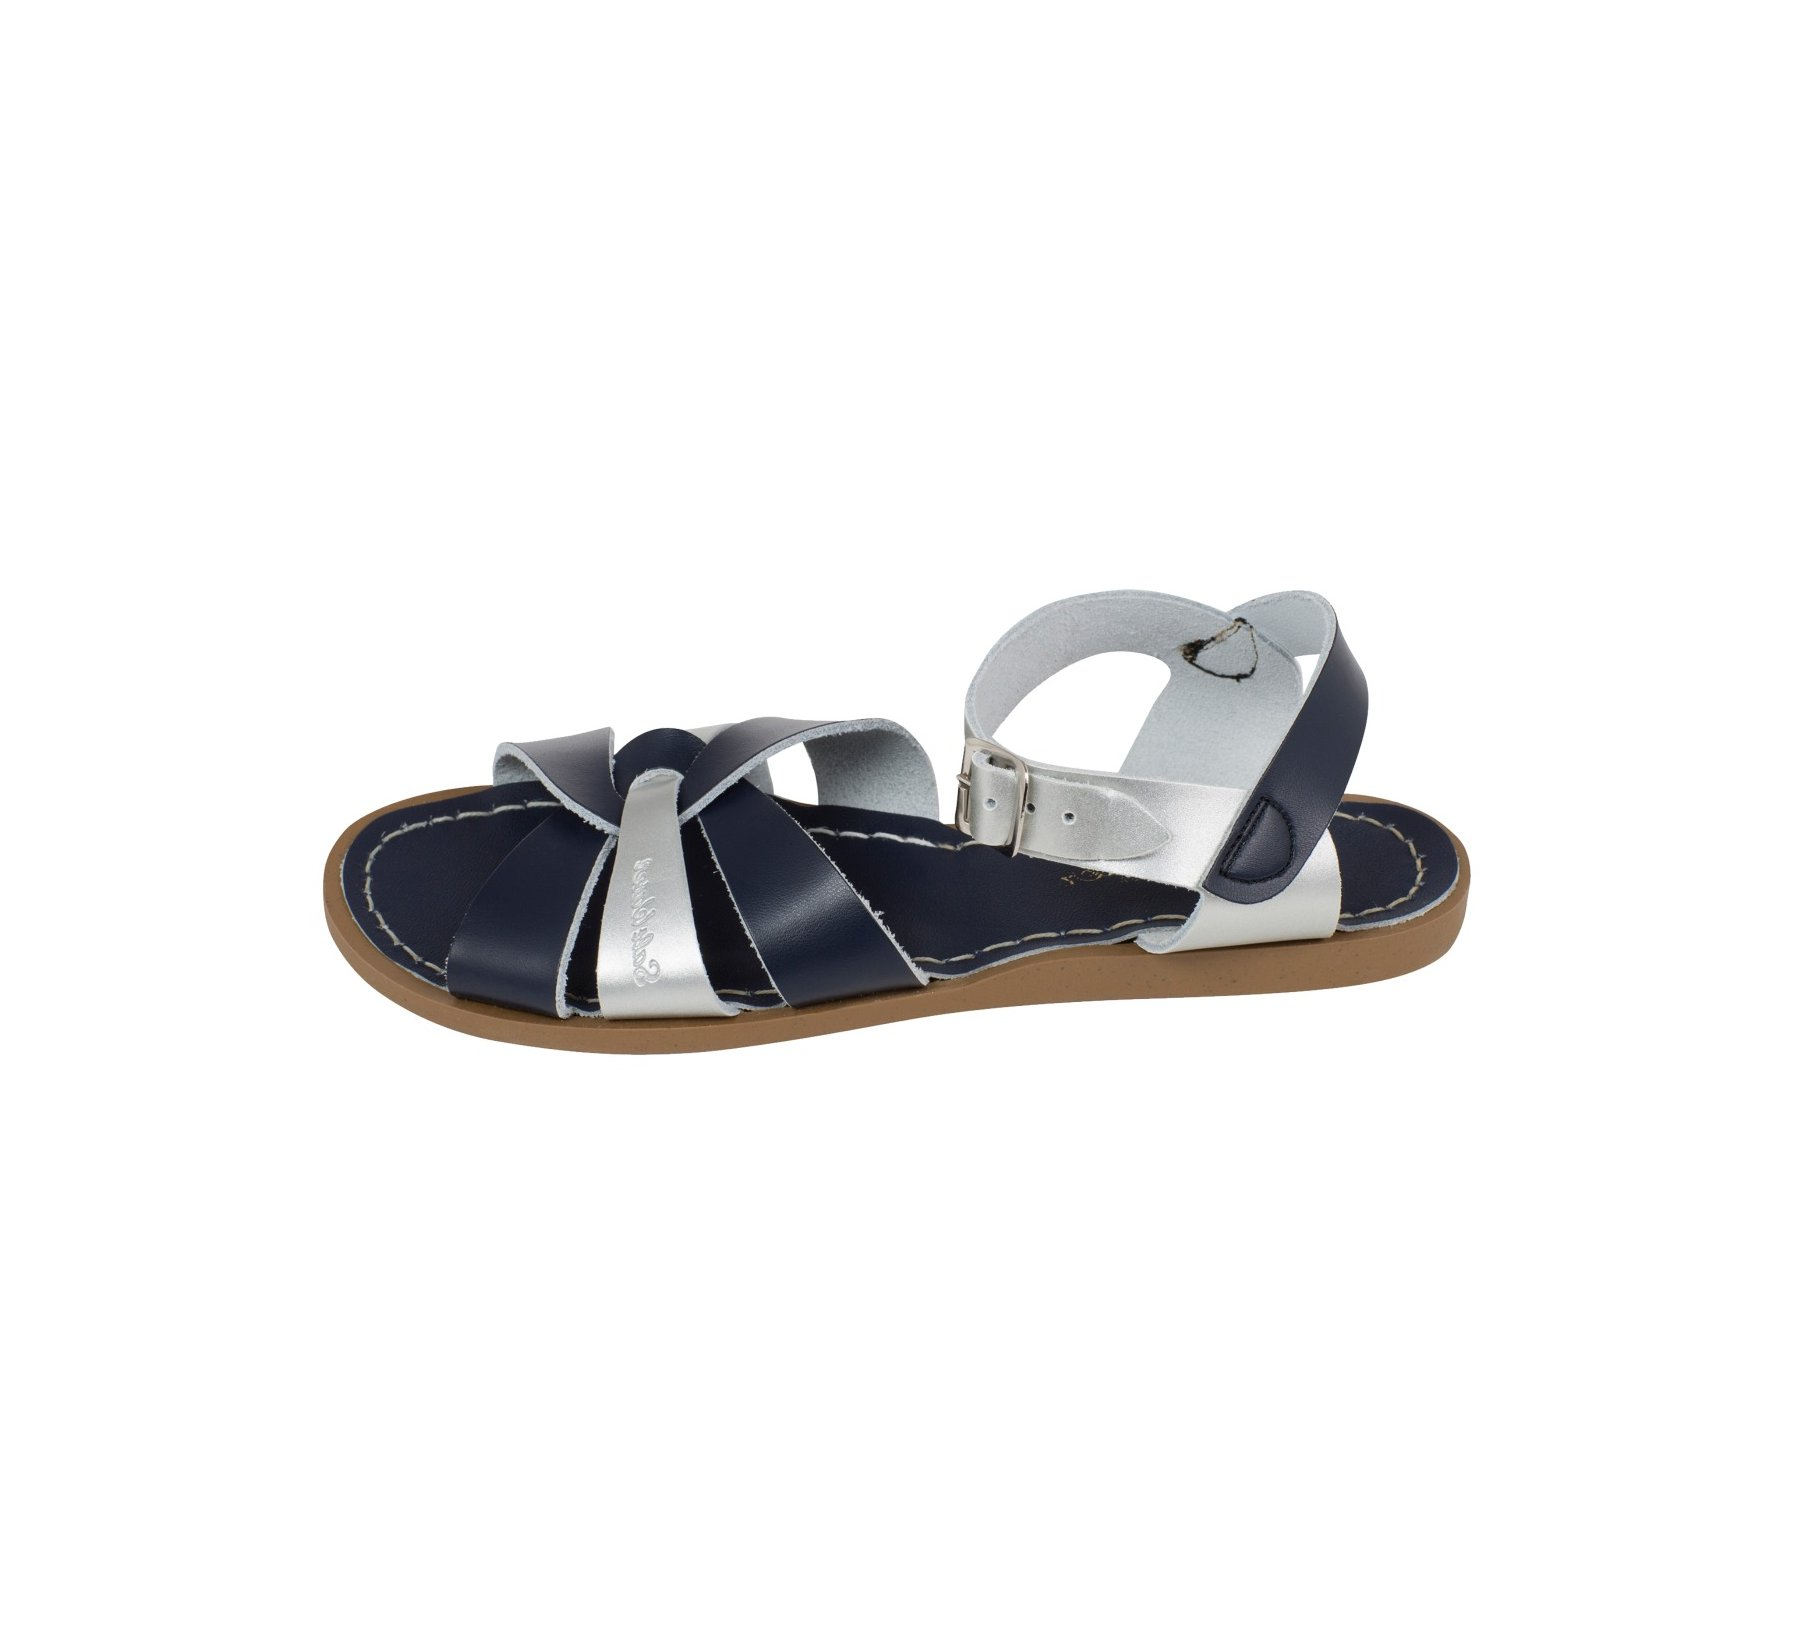 Original Mash-up Nautical Flash - Salt Water Sandals